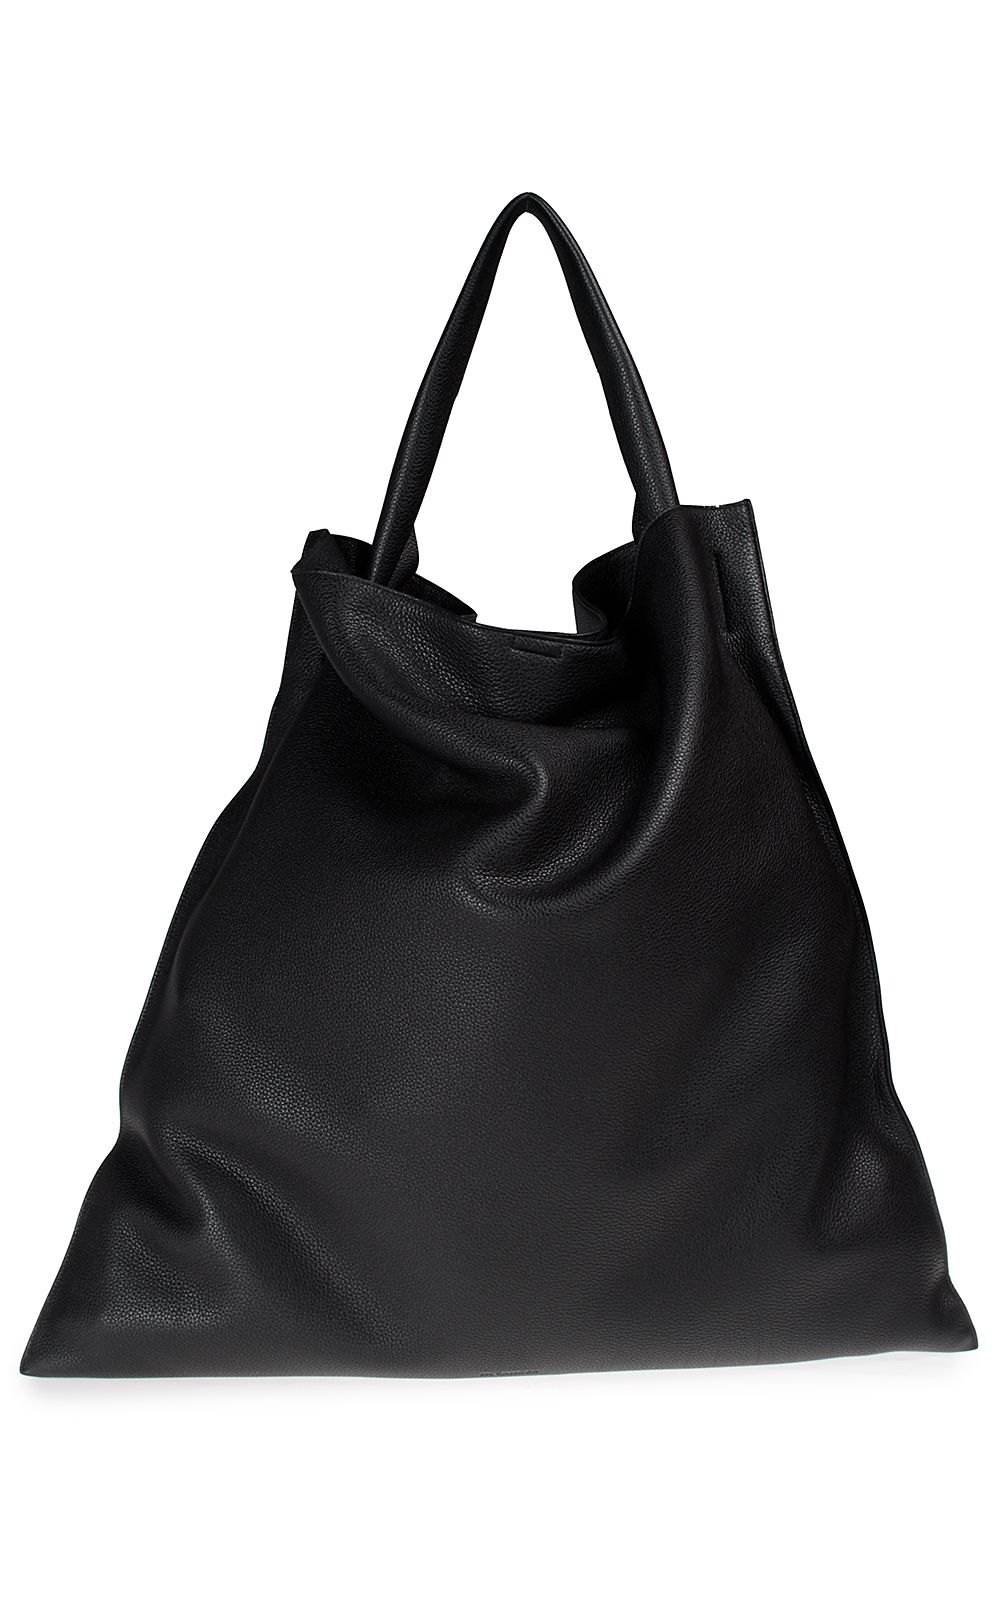 Jil Sander Xiao Lg Leather Tote